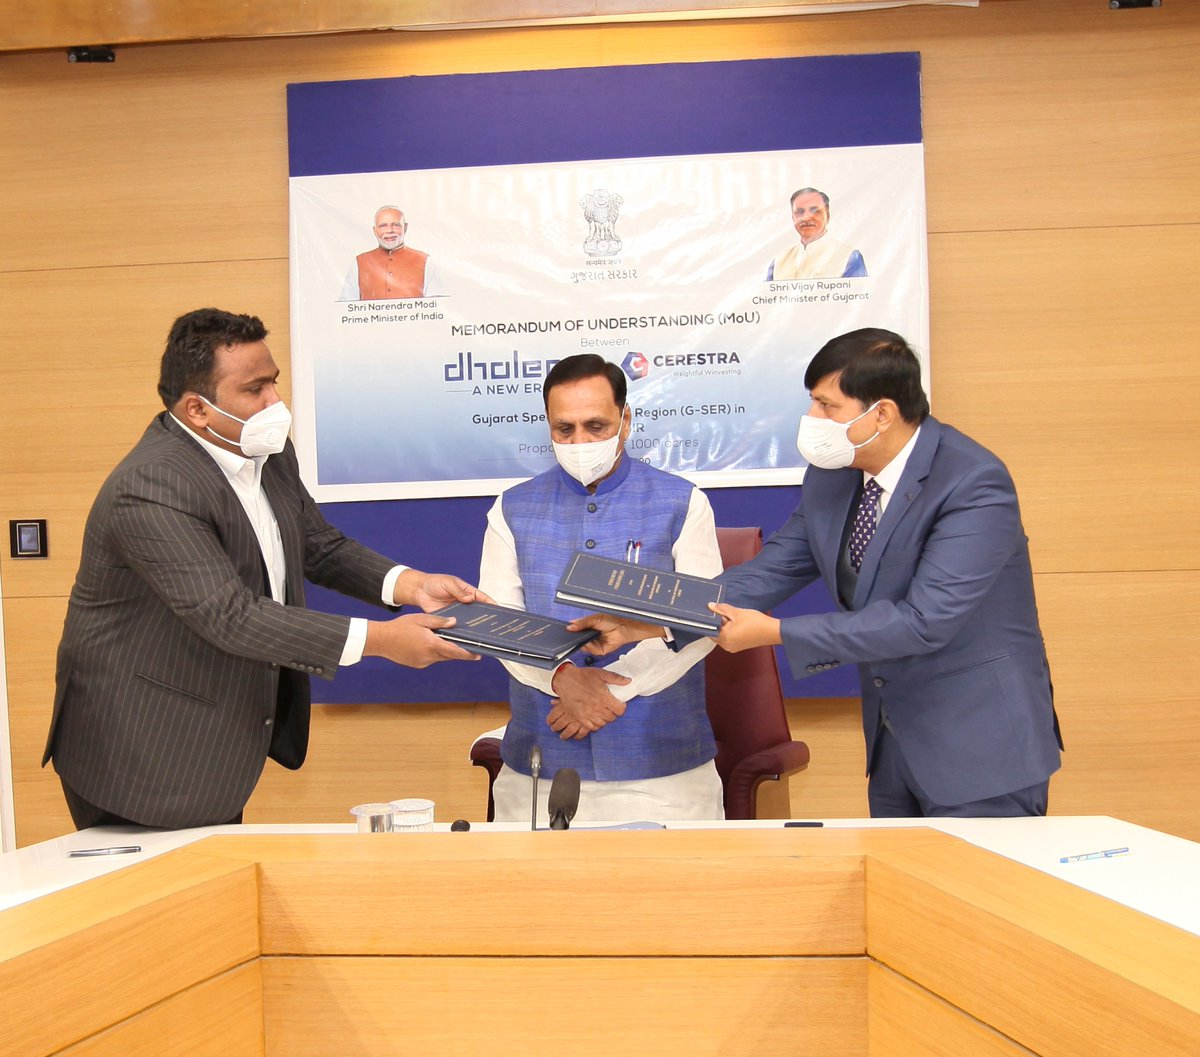 MoU signed for Dholera G-SER with Cerestra Group